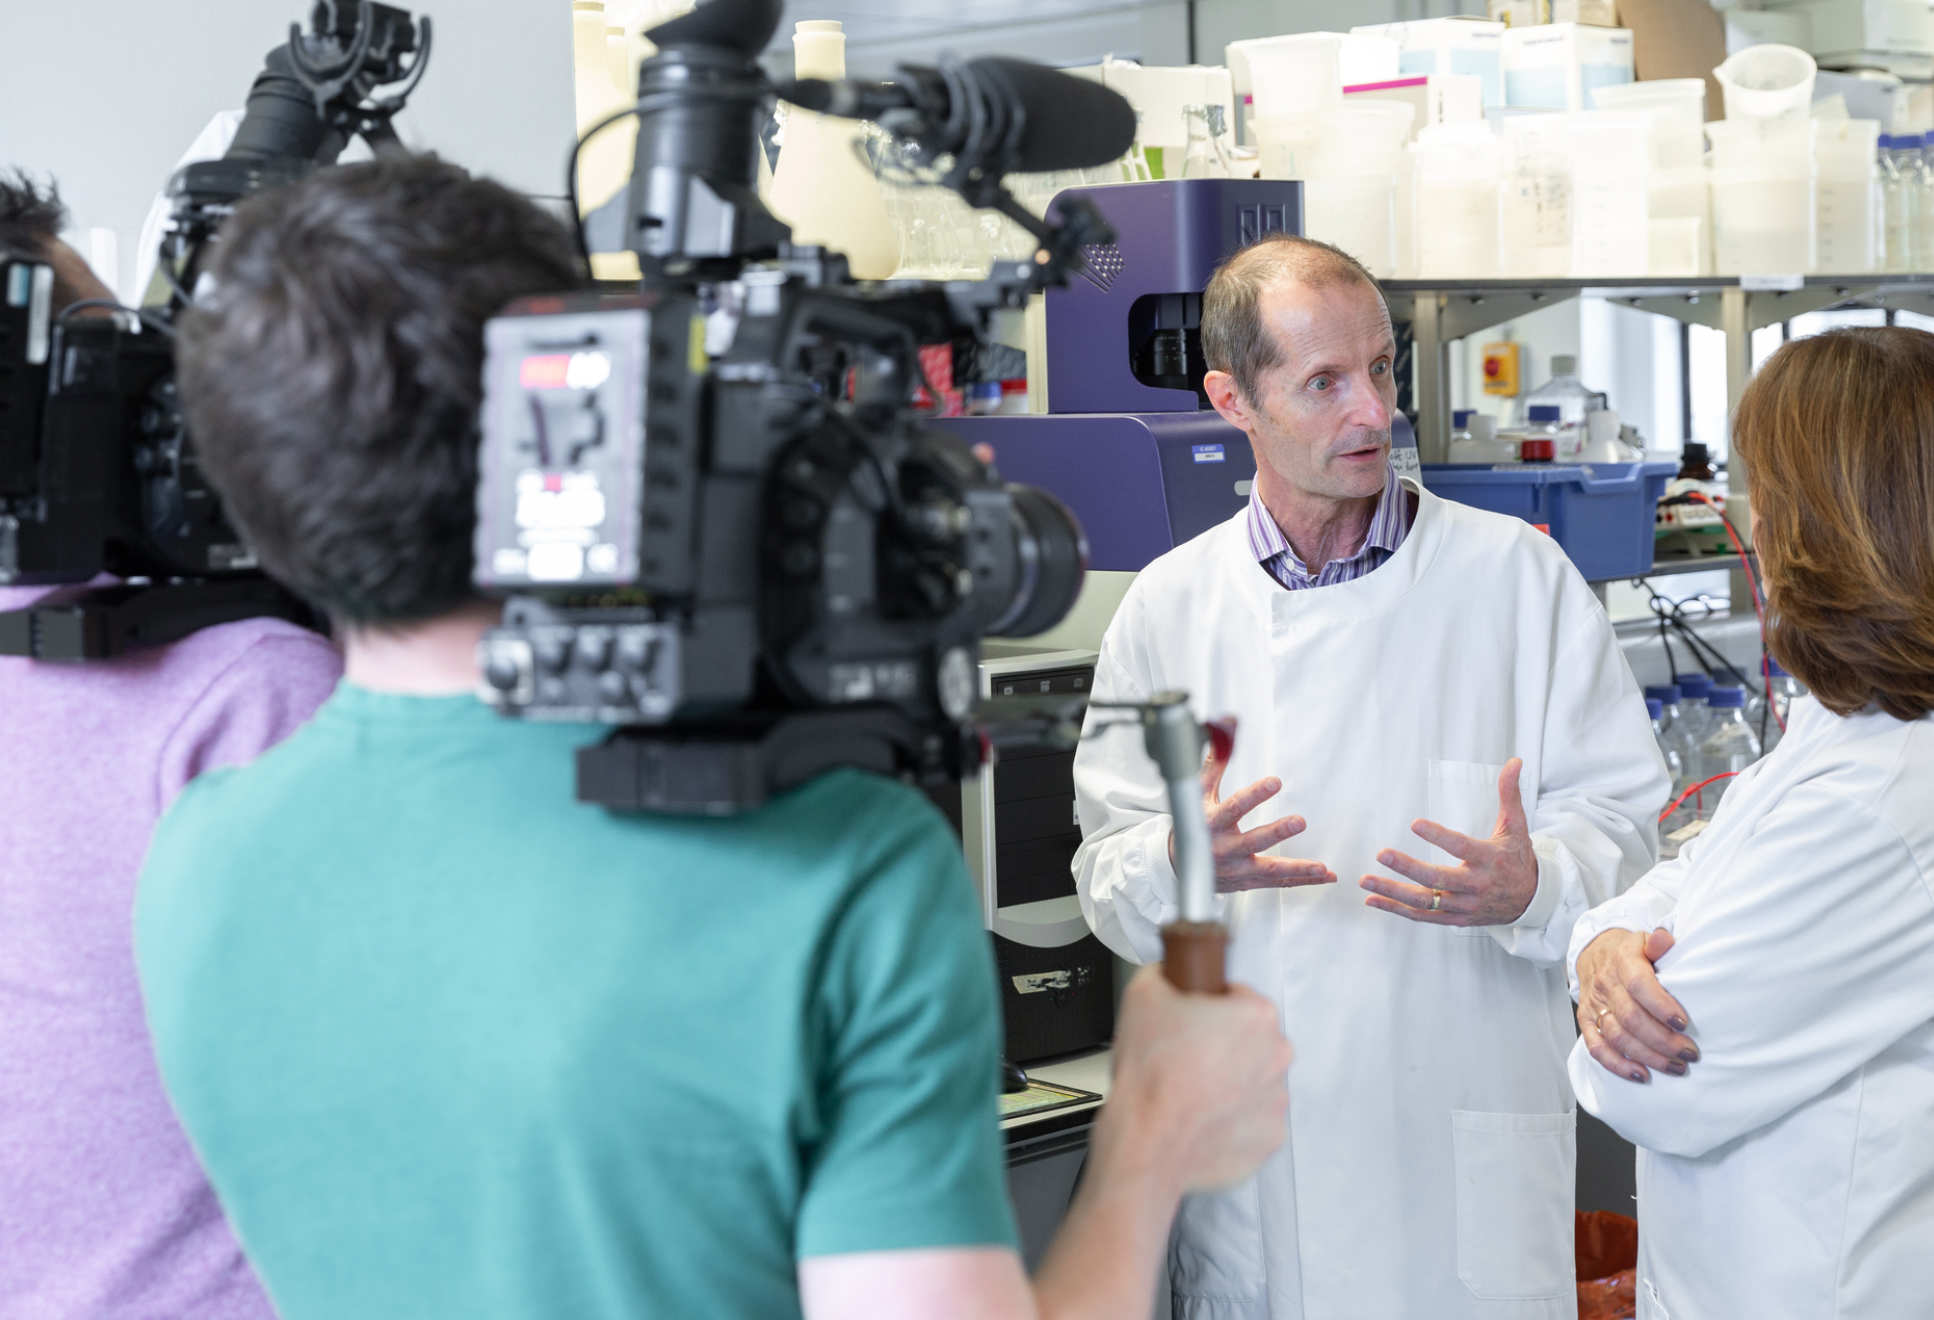 Professor Robin Shattock with a camera crew in the lab